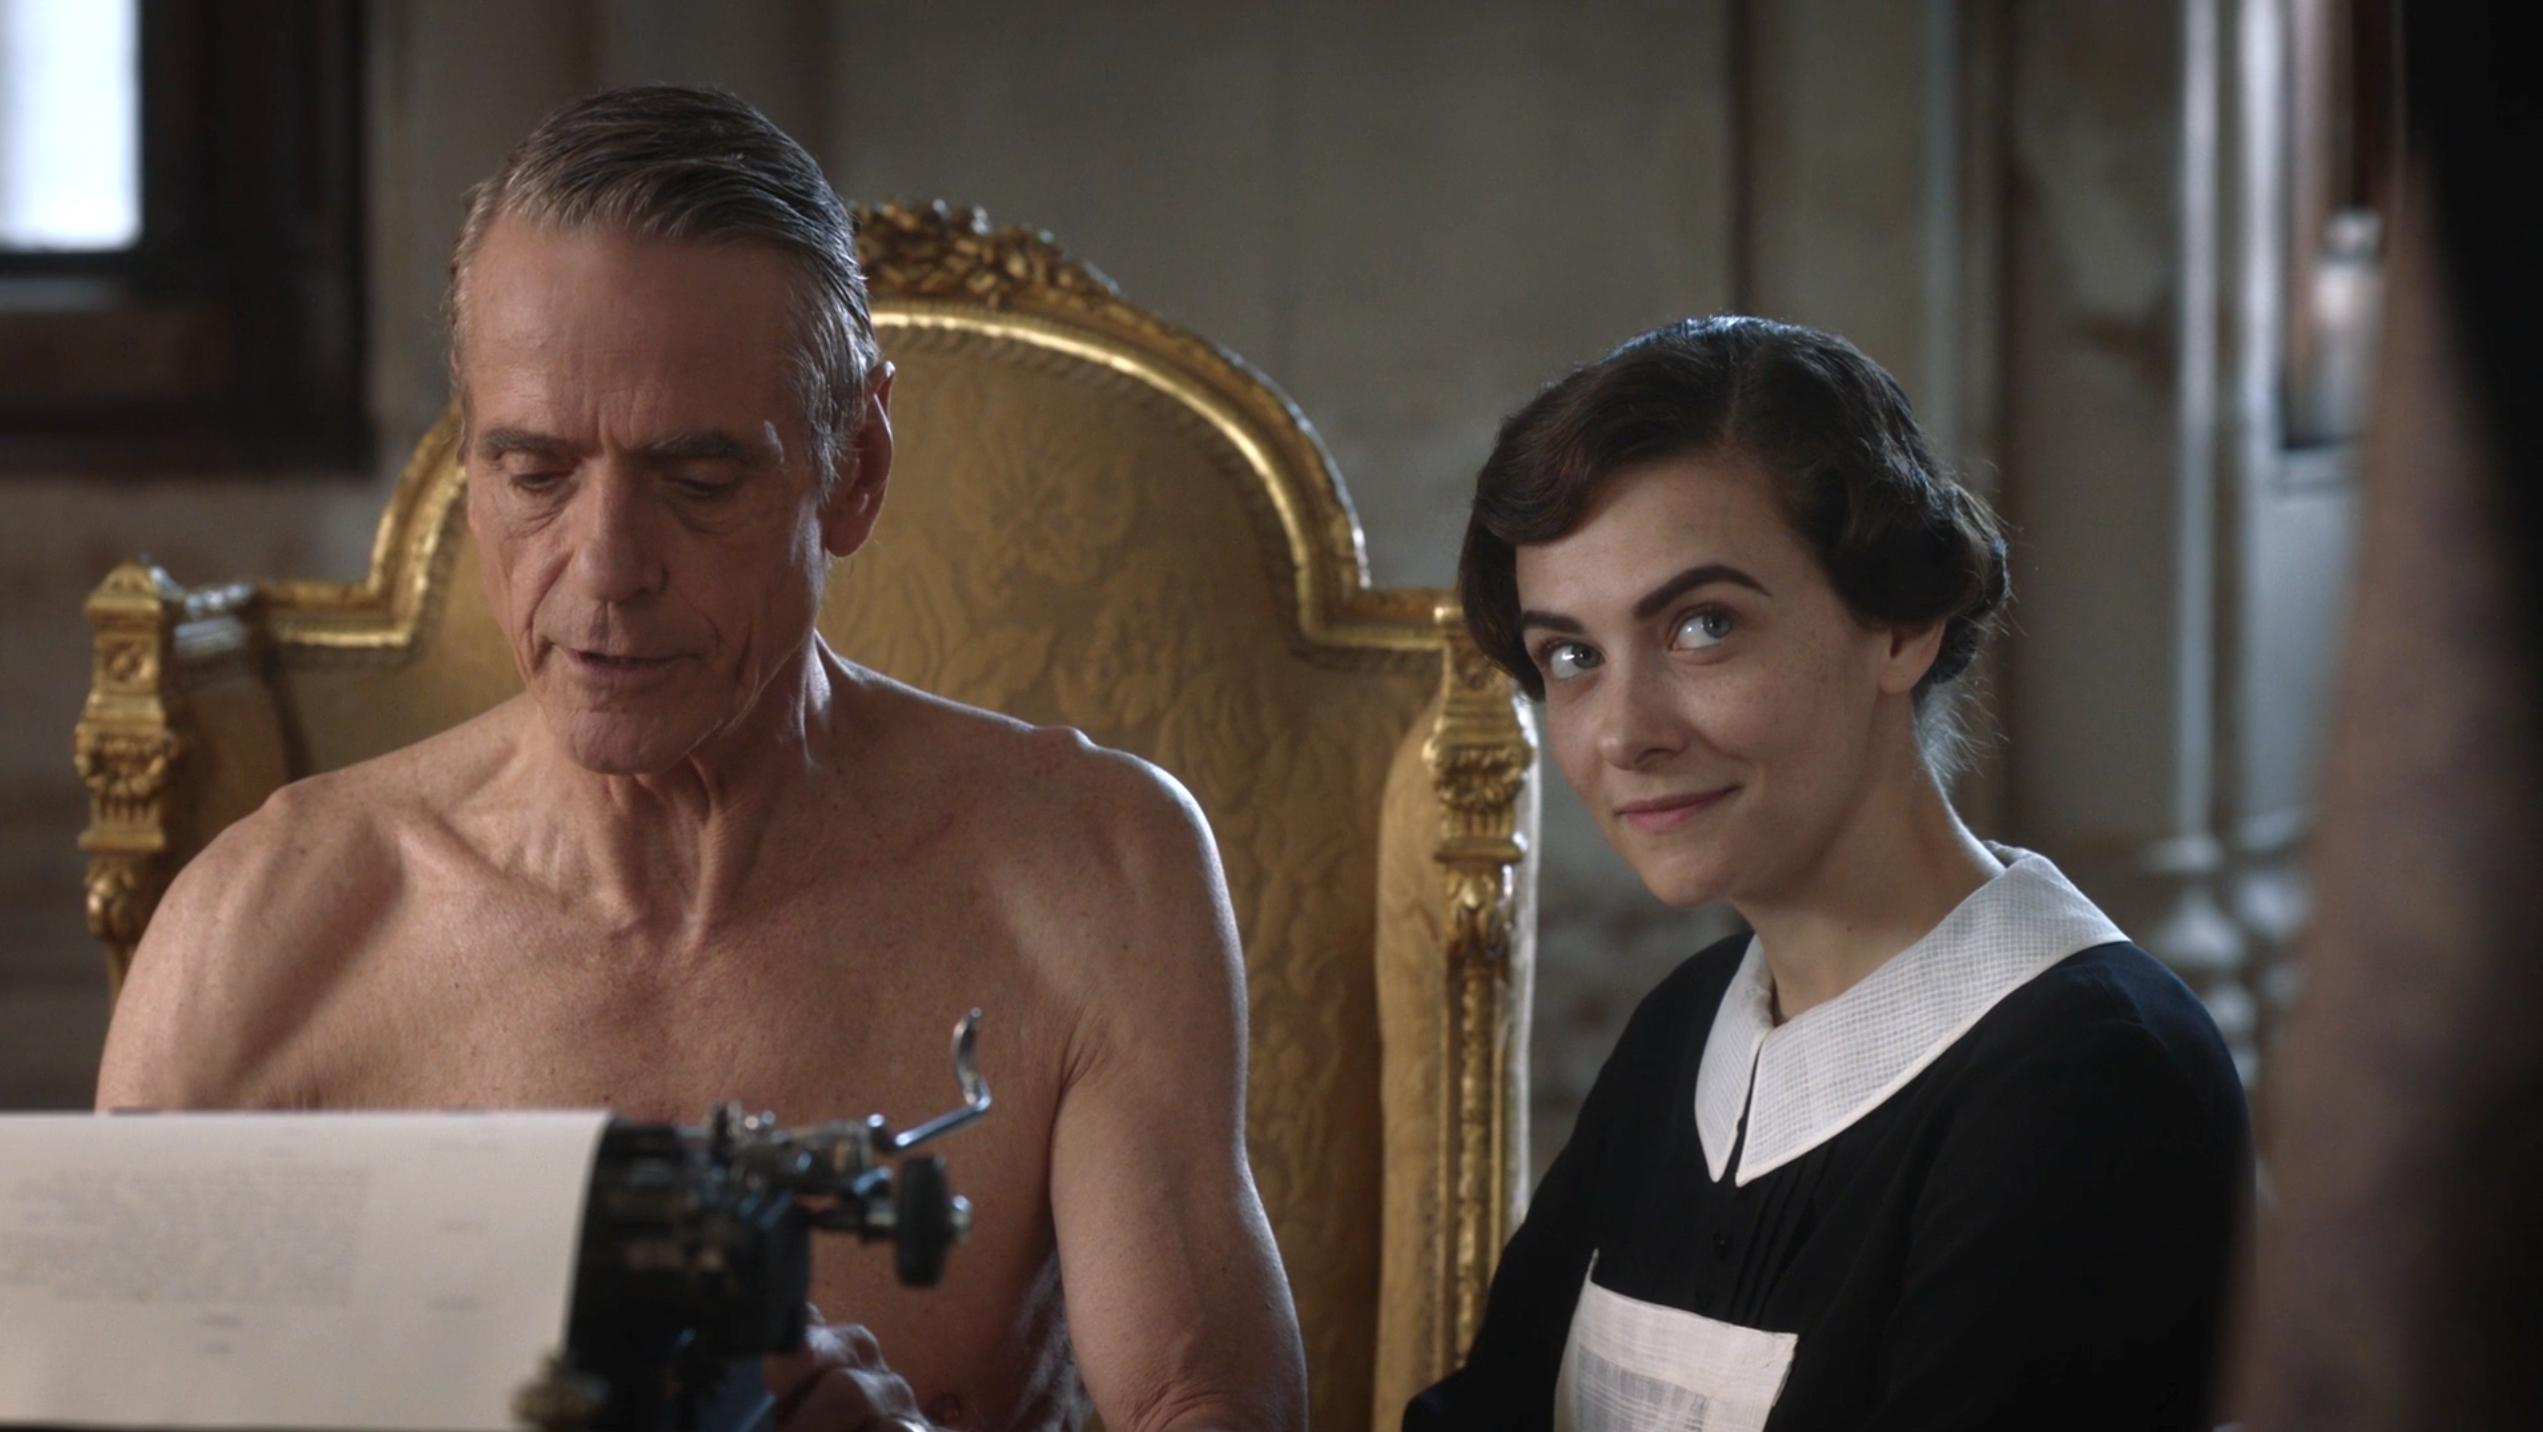 Jeremy Irons and Sara Vickers in Watchmen (2019)